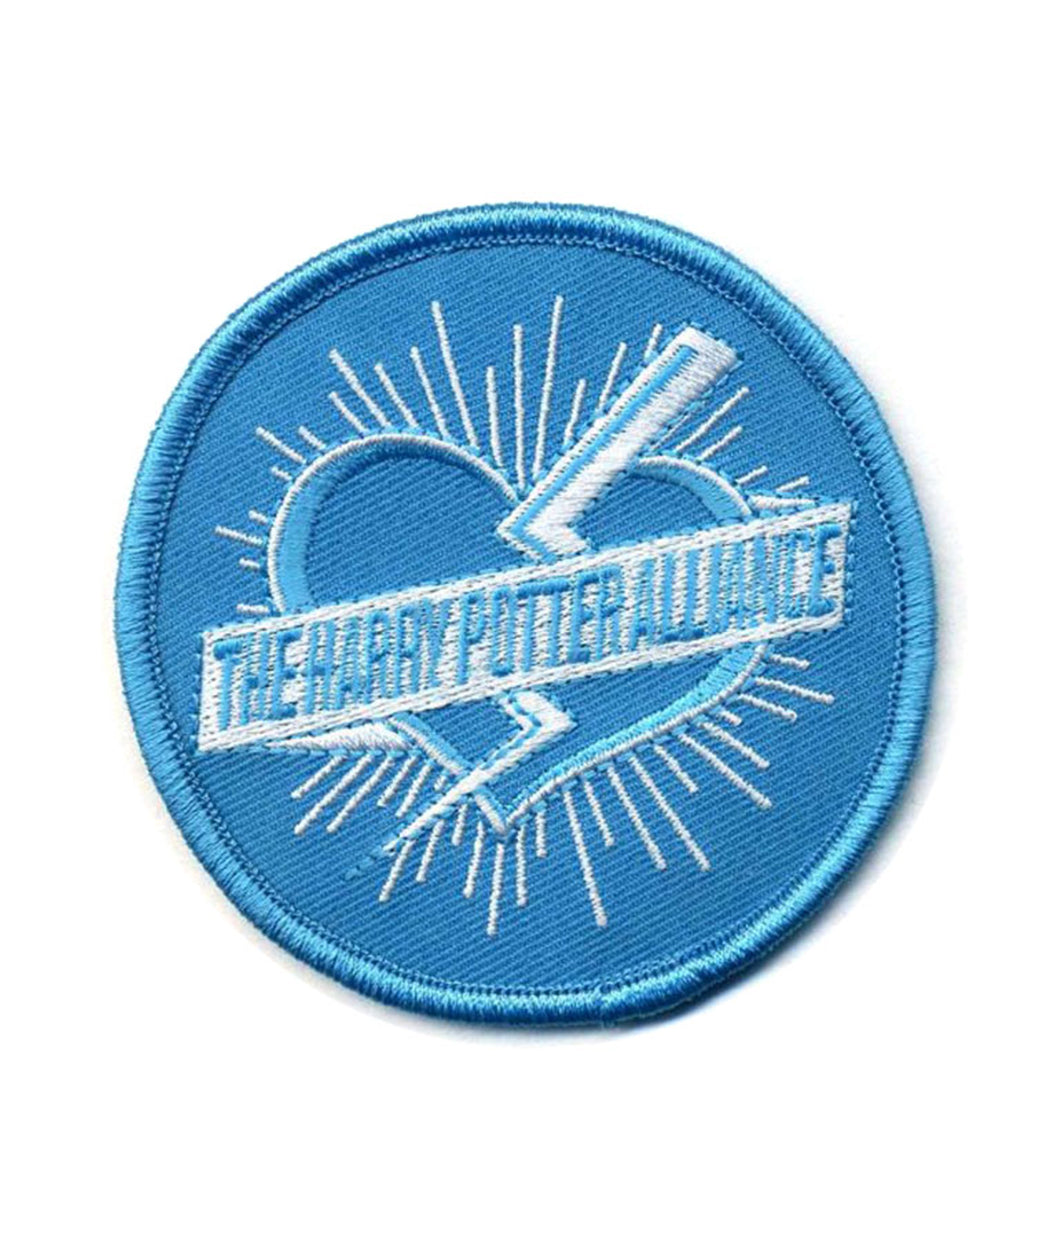 HPA Patch